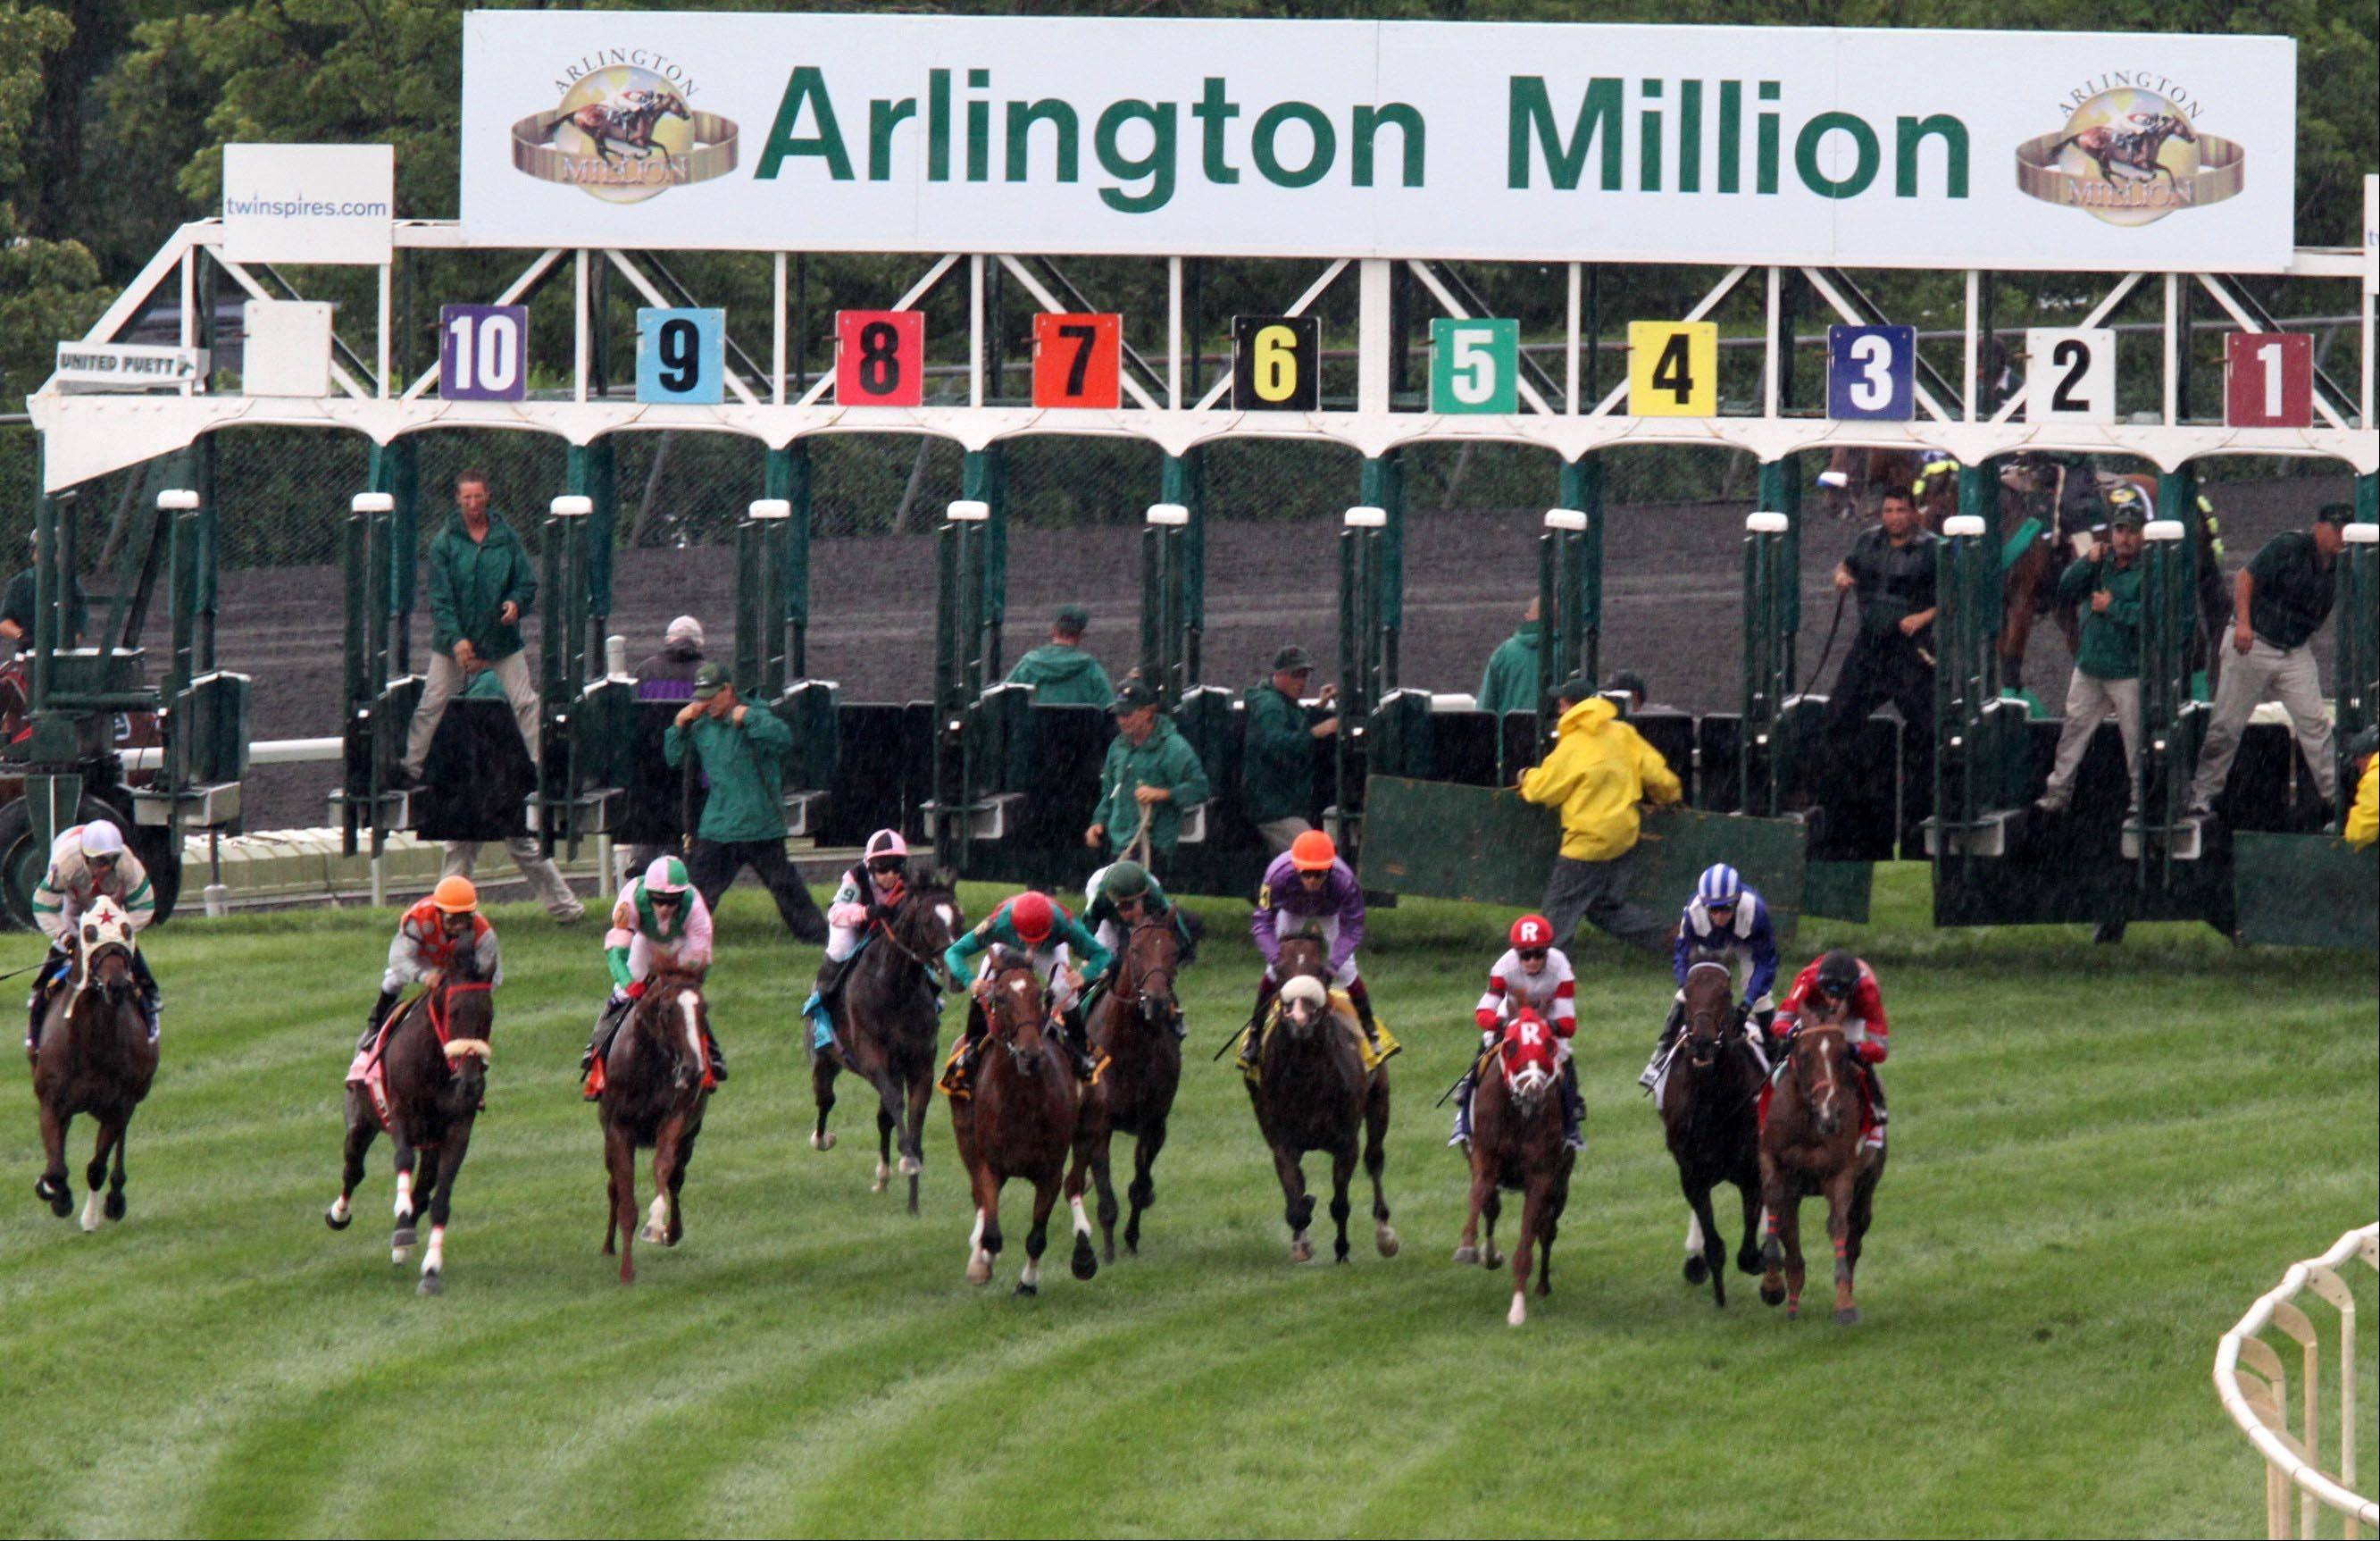 Arlington Park officials didn't get the racing schedule they sought from the Illinois Racing Board, and now they're uncertain if they can invest in lights for limited night racing.